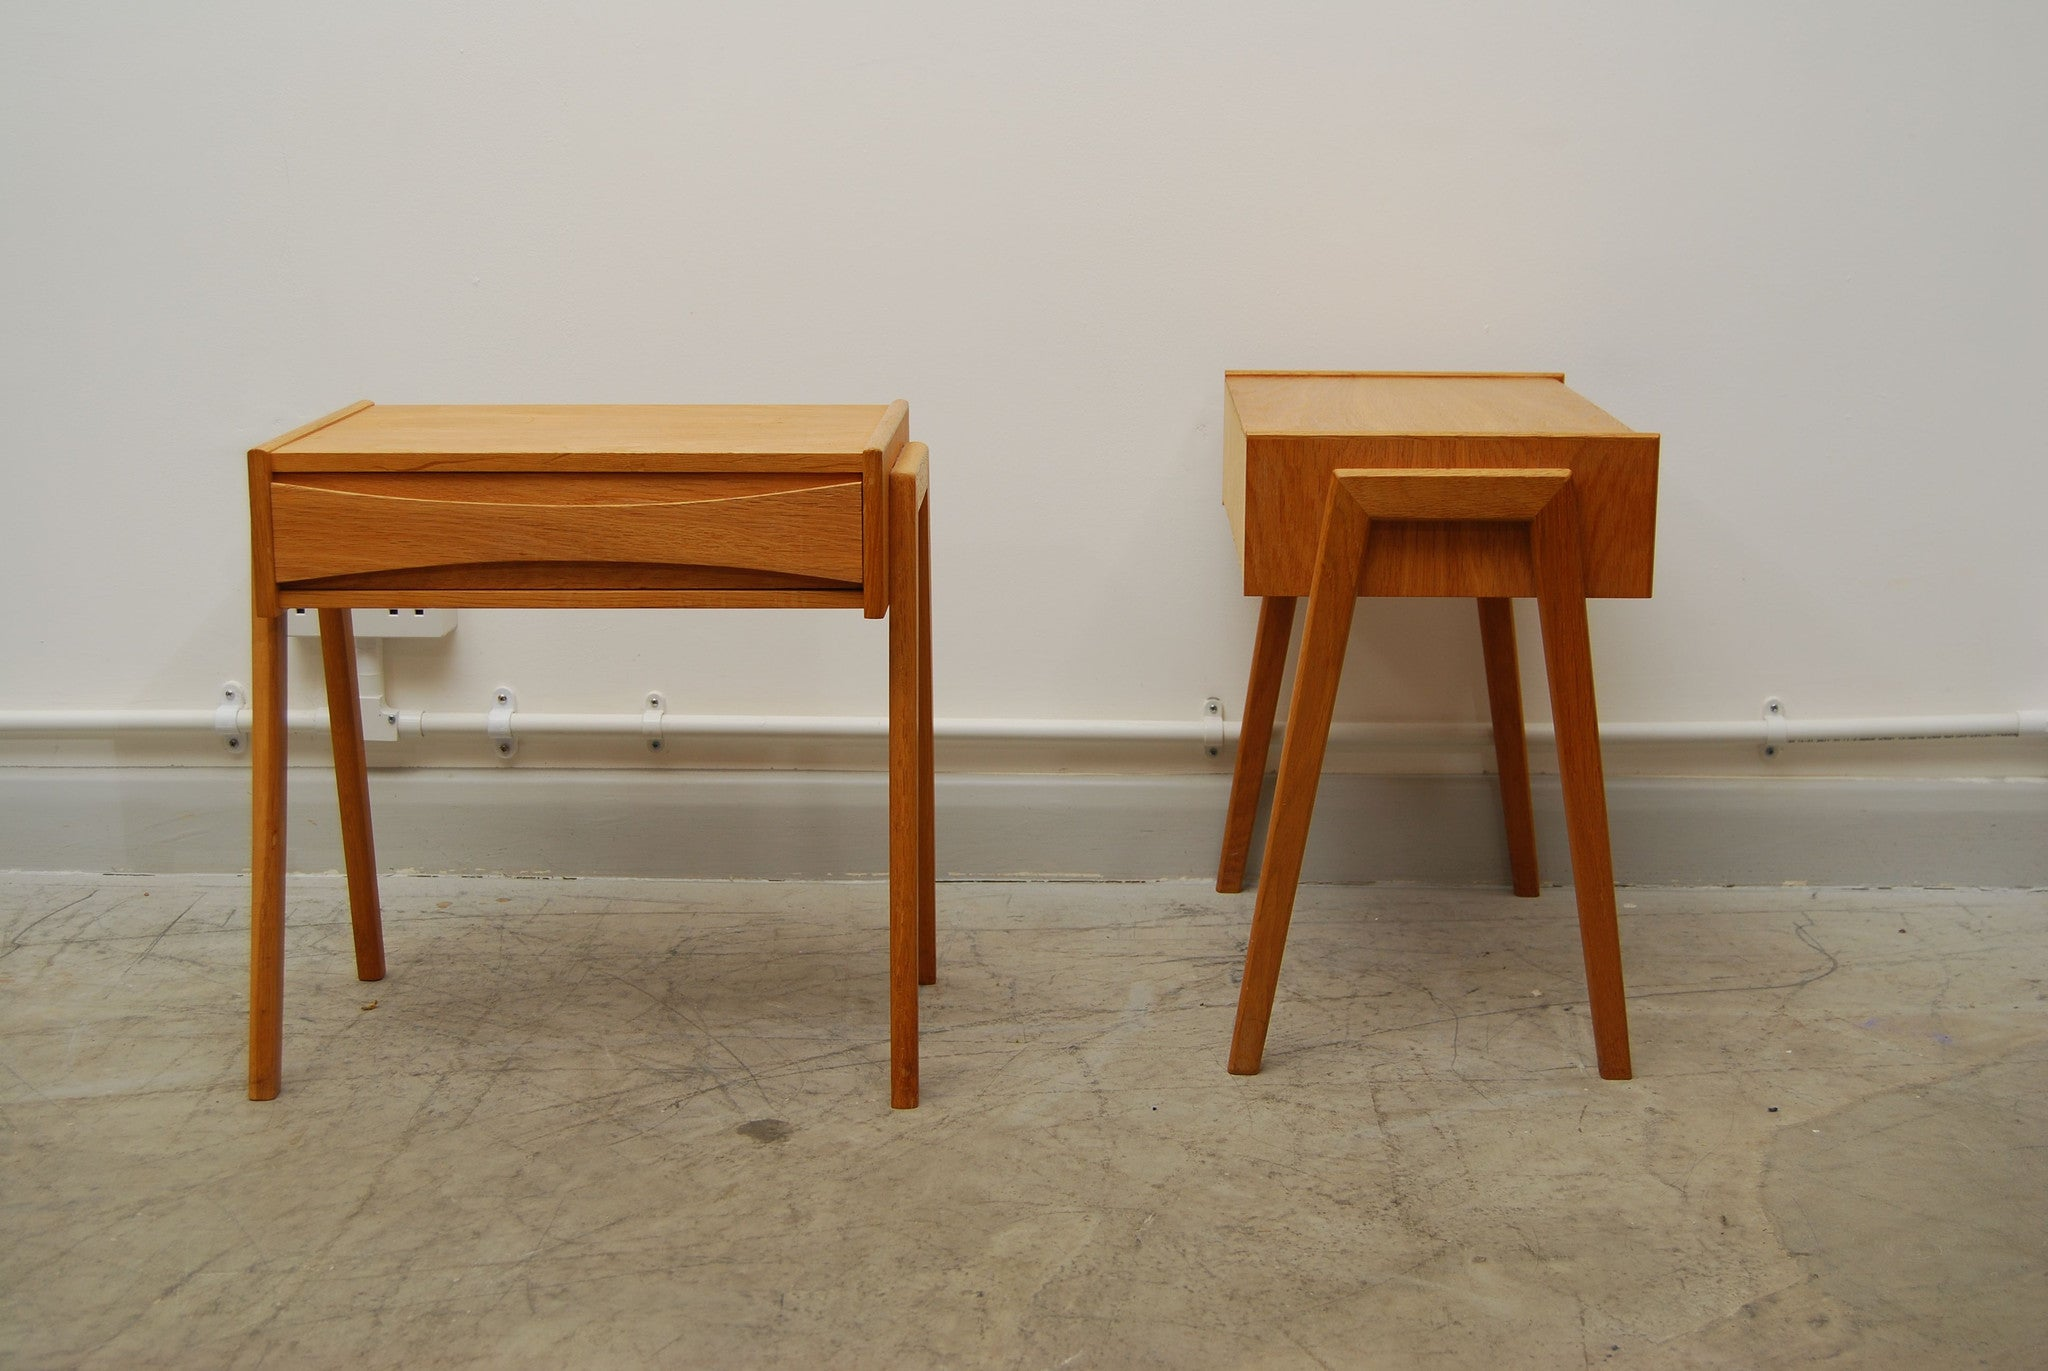 Pair of oak bedside tables by Arne Vodder